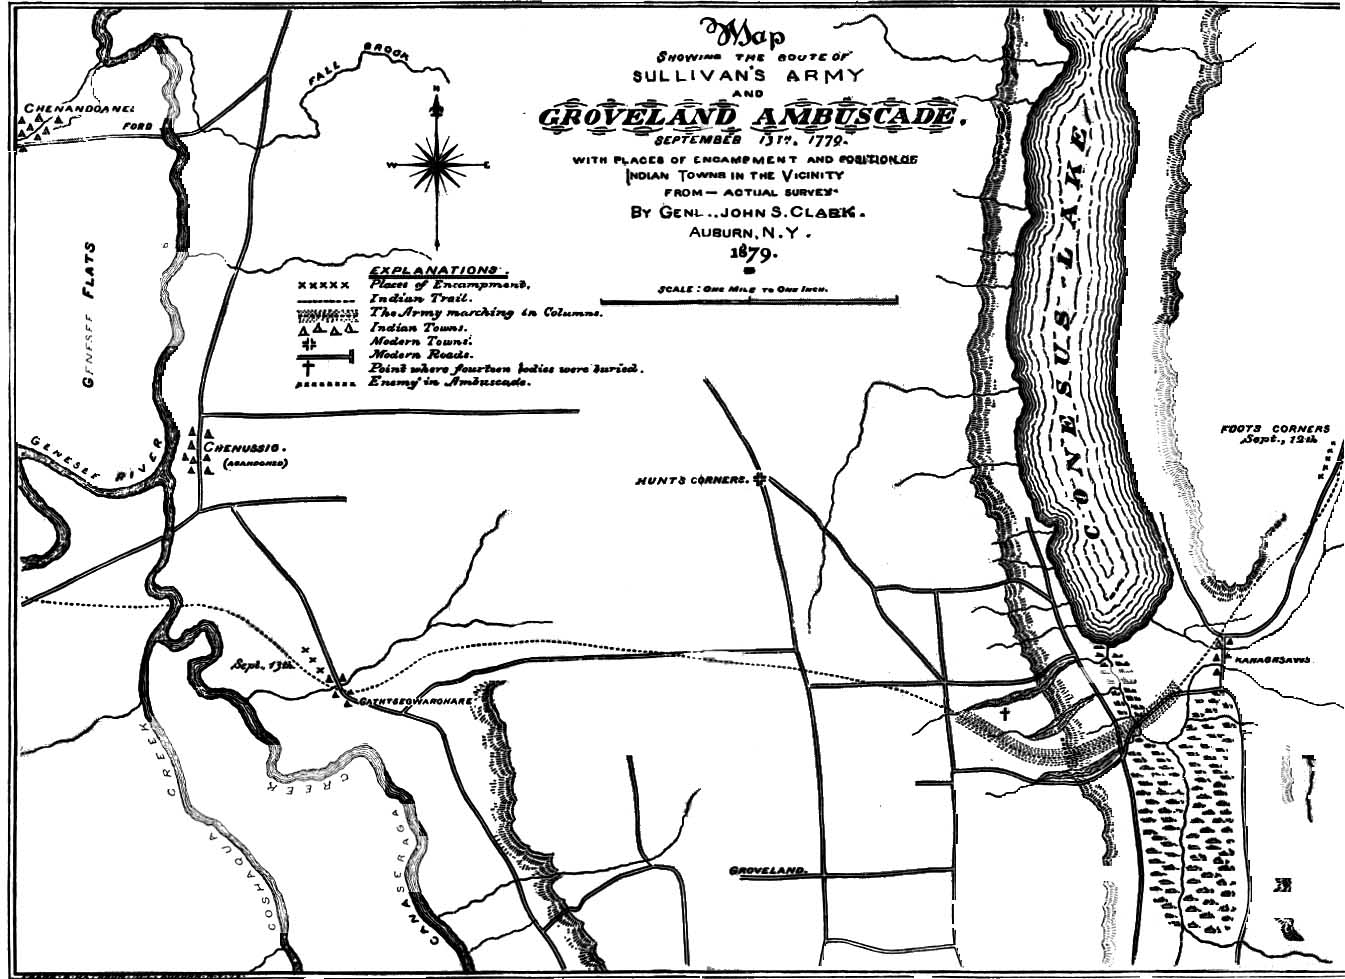 Map Of Groveland Ambuscade